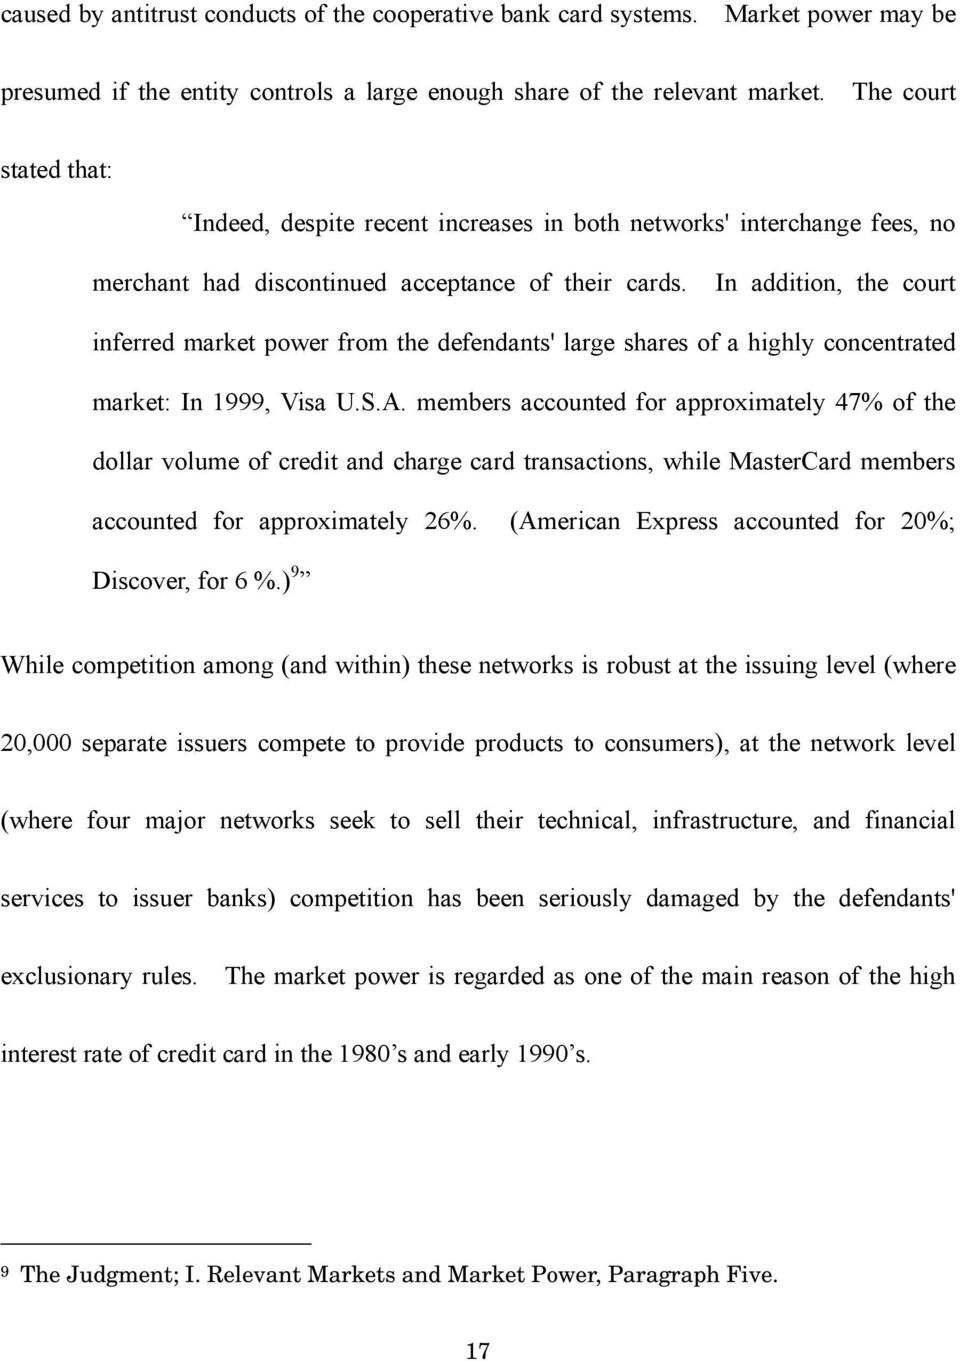 In addition, the court inferred market power from the defendants' large shares of a highly concentrated market: In 1999, Visa U.S.A.